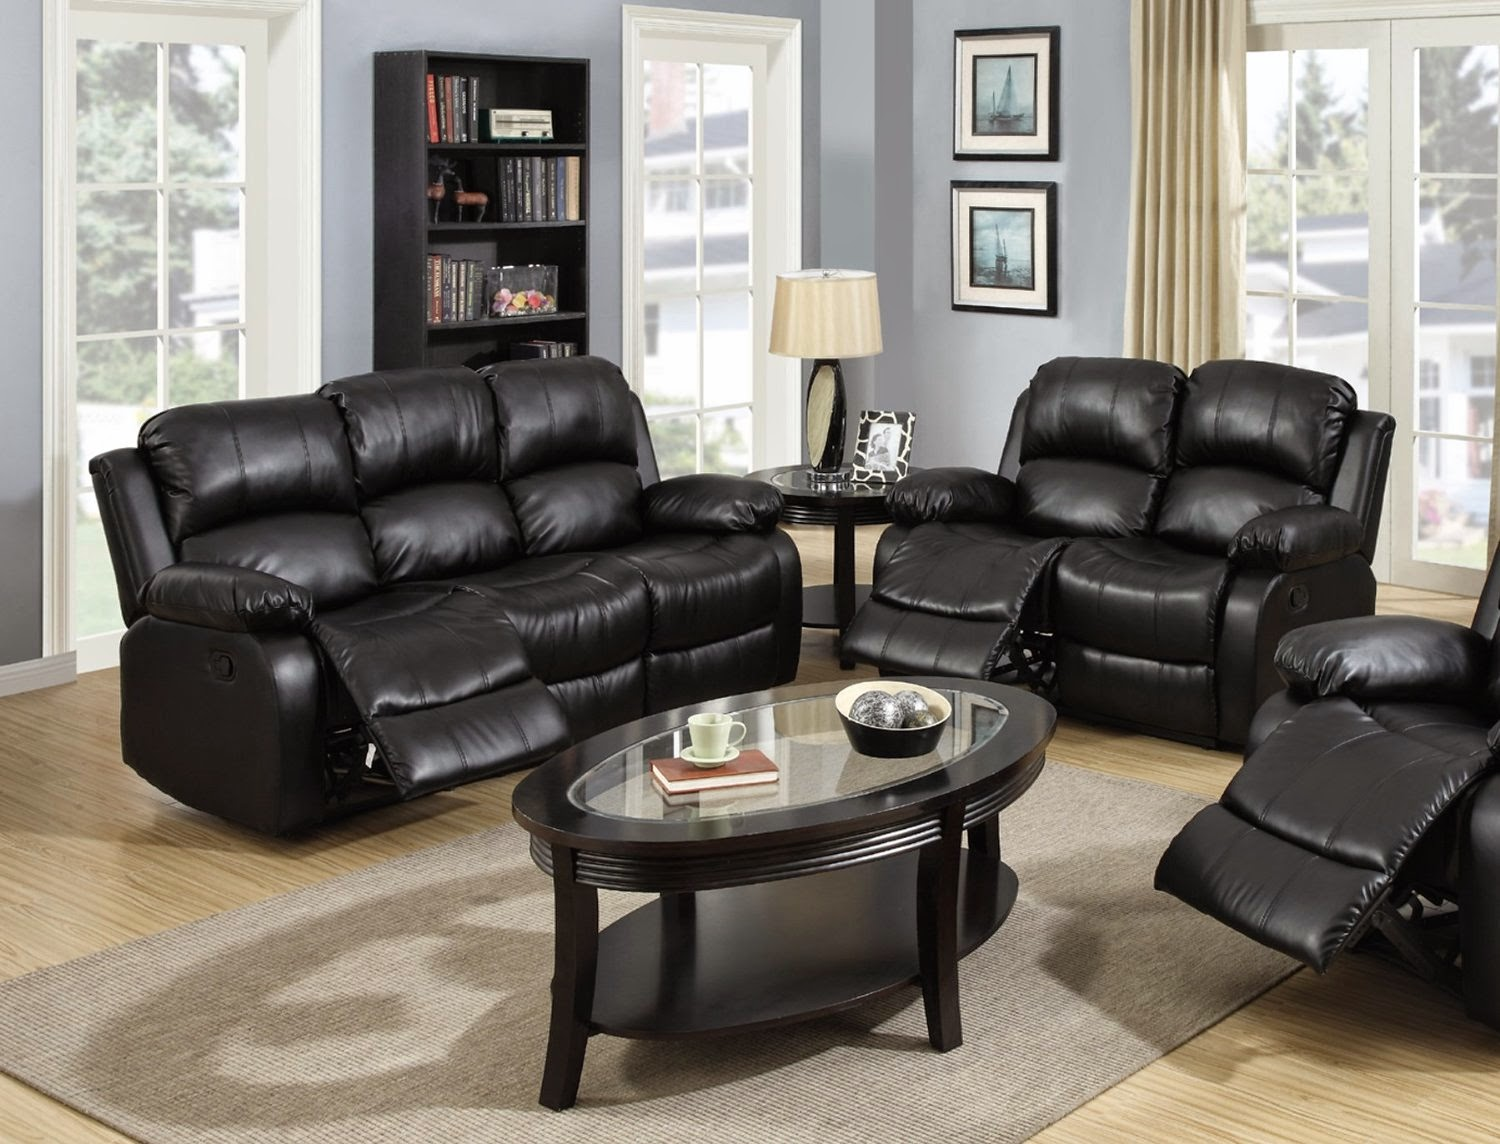 Reclining sofa sets sale reclining sofa loveseat sets Reclining loveseat sale